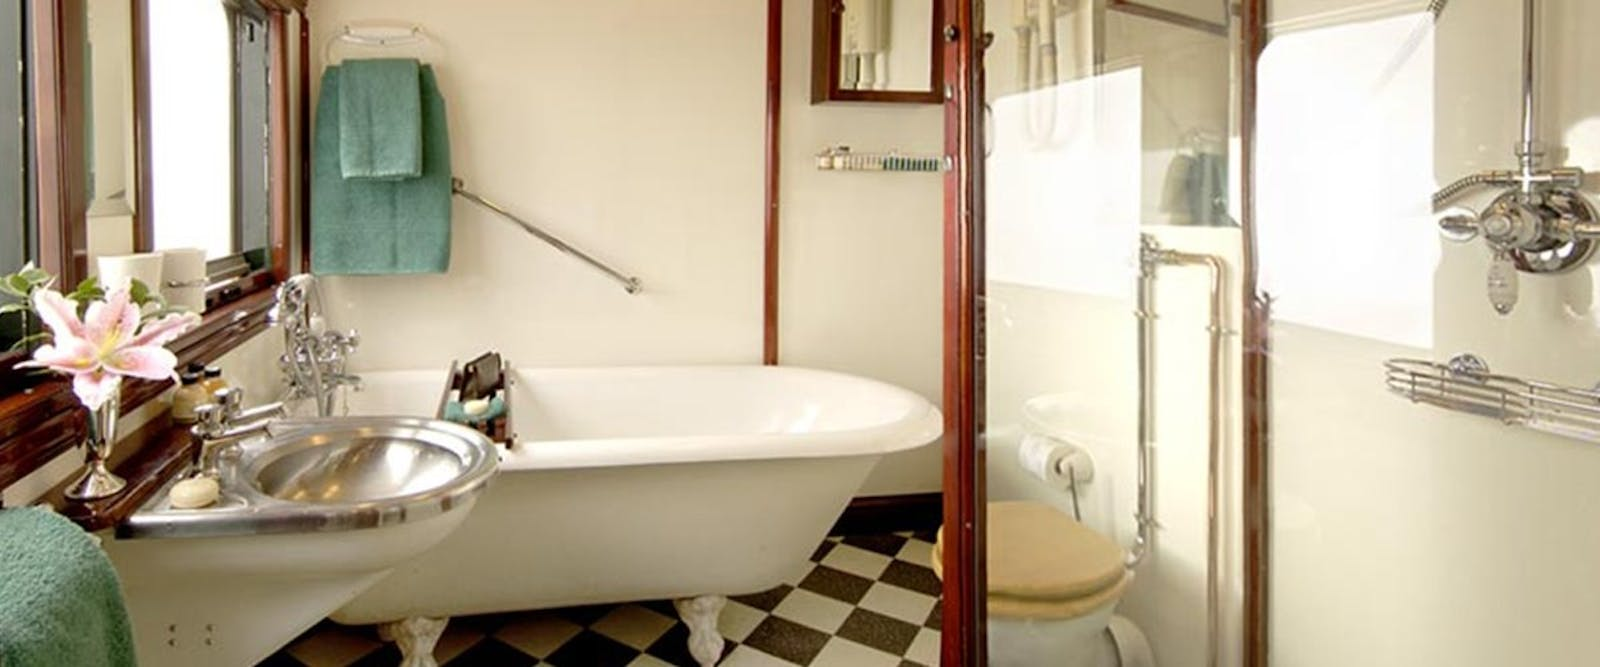 Royal suite bathroom on Rovos Rail, South Africa